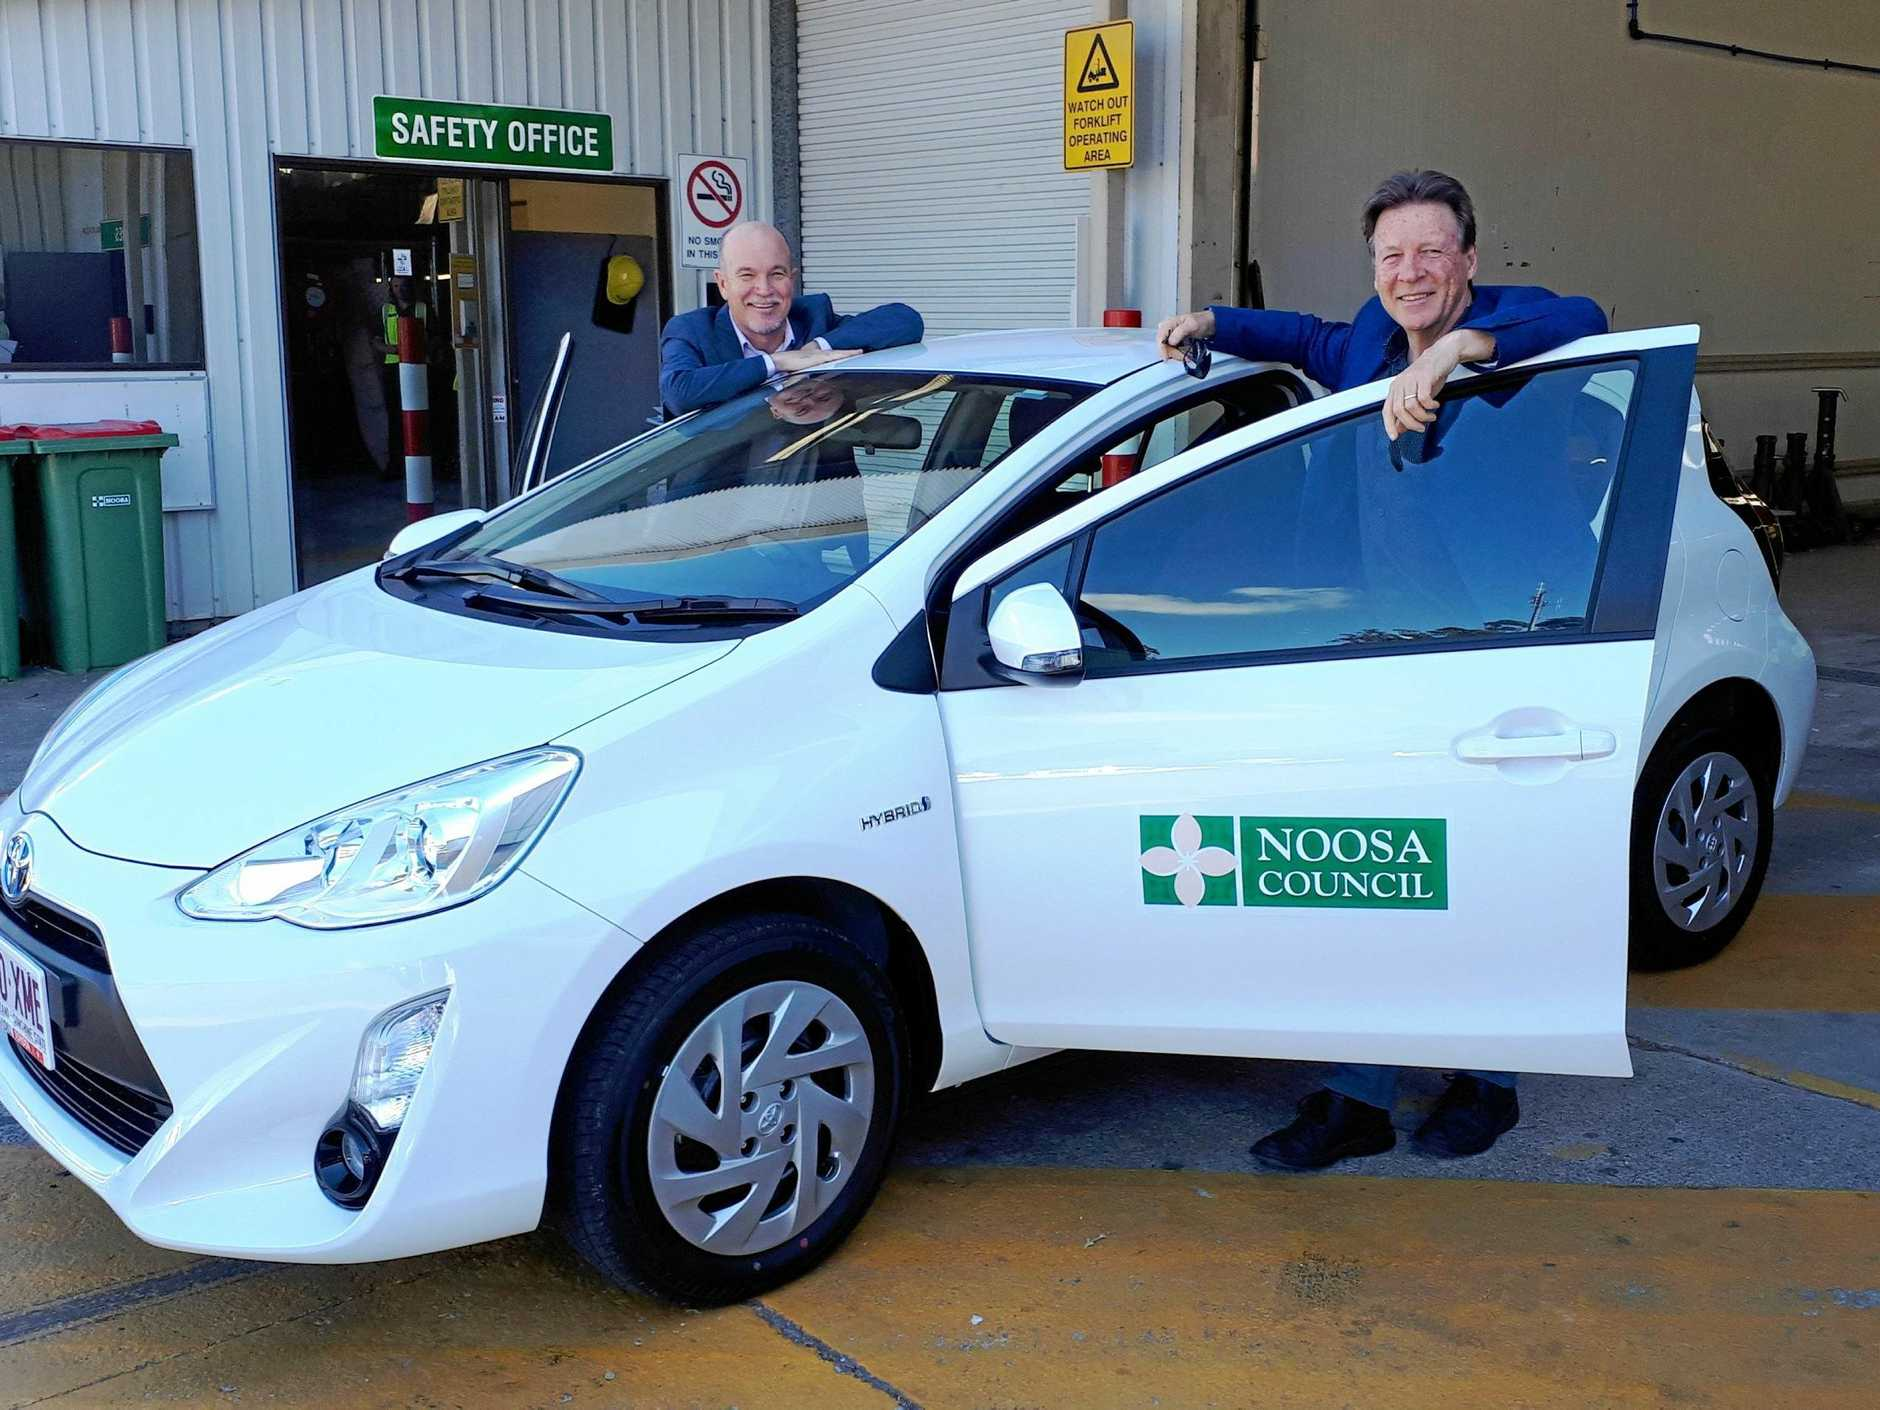 IN GOOD SHAPE: Noosa Mayor Tony Wellington (right) and Noosa Council CEO Brett de Chastel (left).